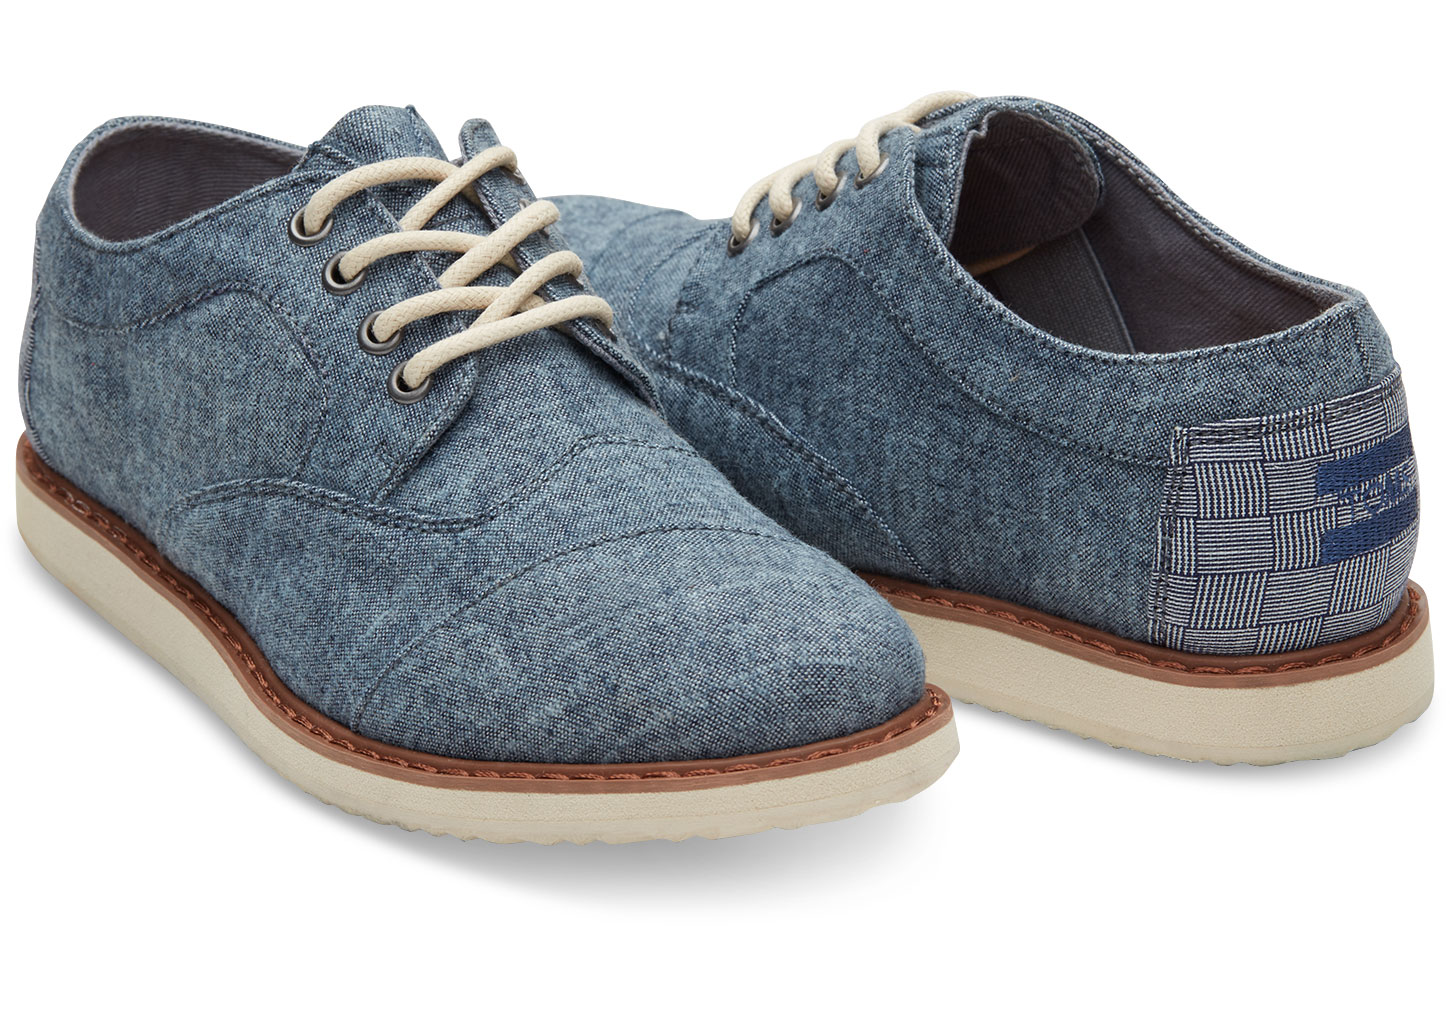 Chambray Youth Brogues - $54 Toms